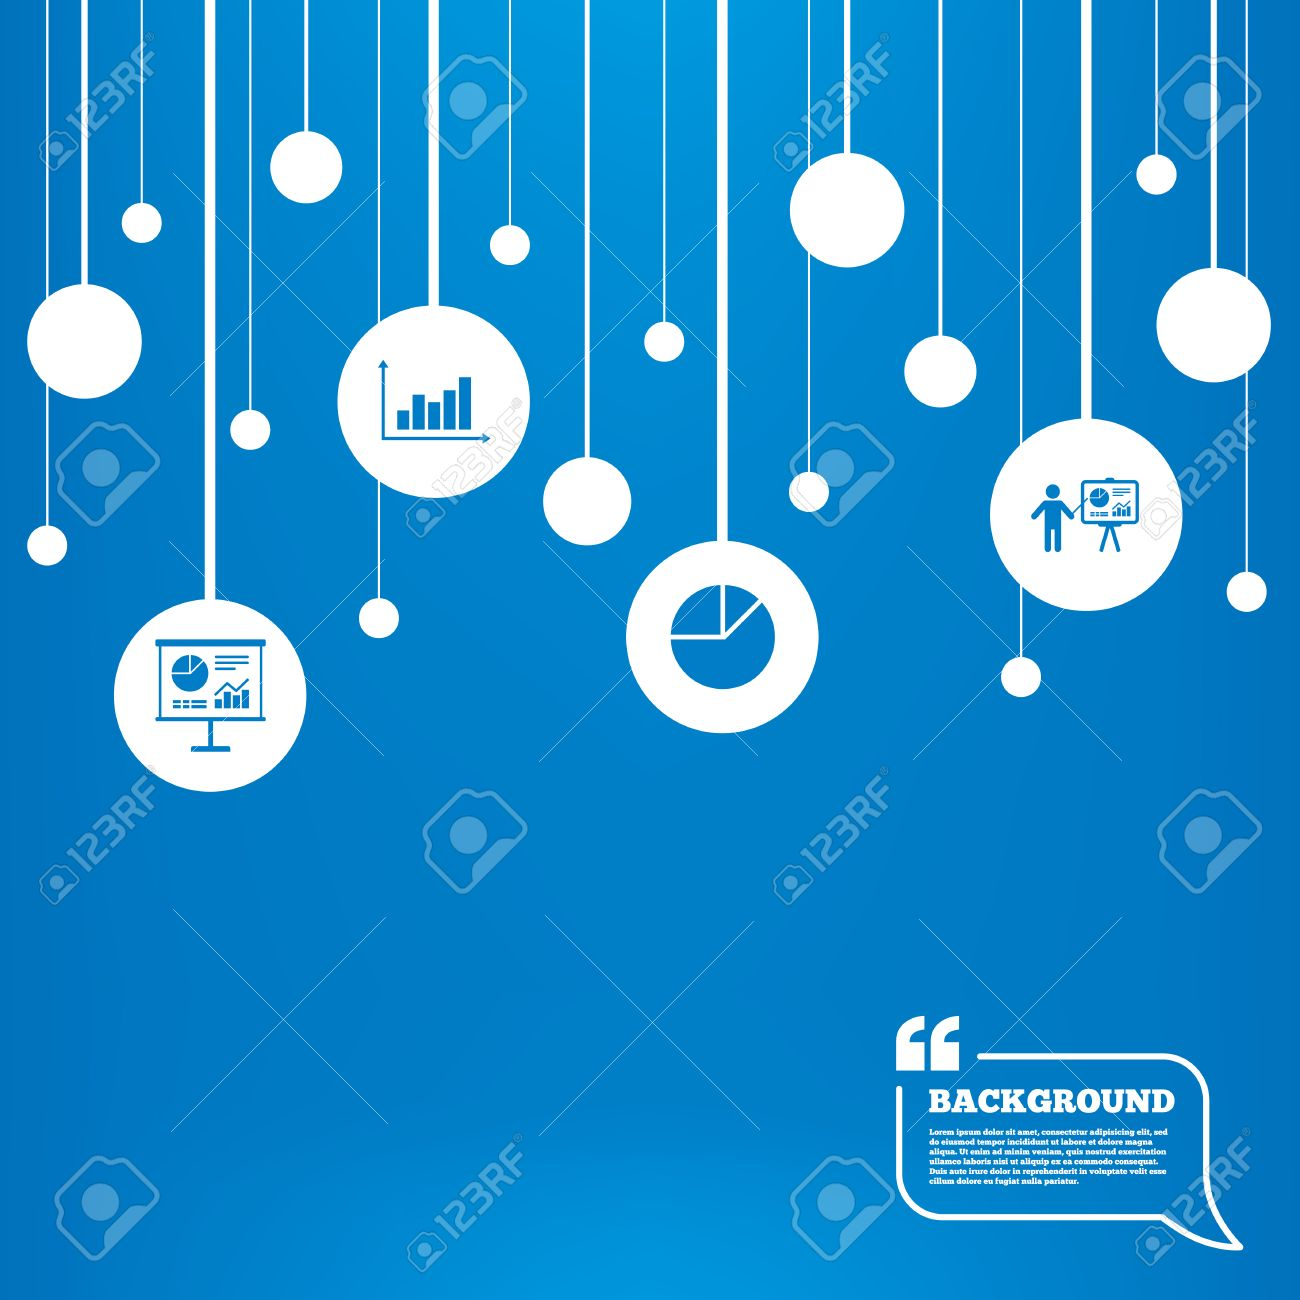 Circles background with lines diagram graph pie chart icon circles background with lines diagram graph pie chart icon presentation billboard symbol supply nvjuhfo Choice Image